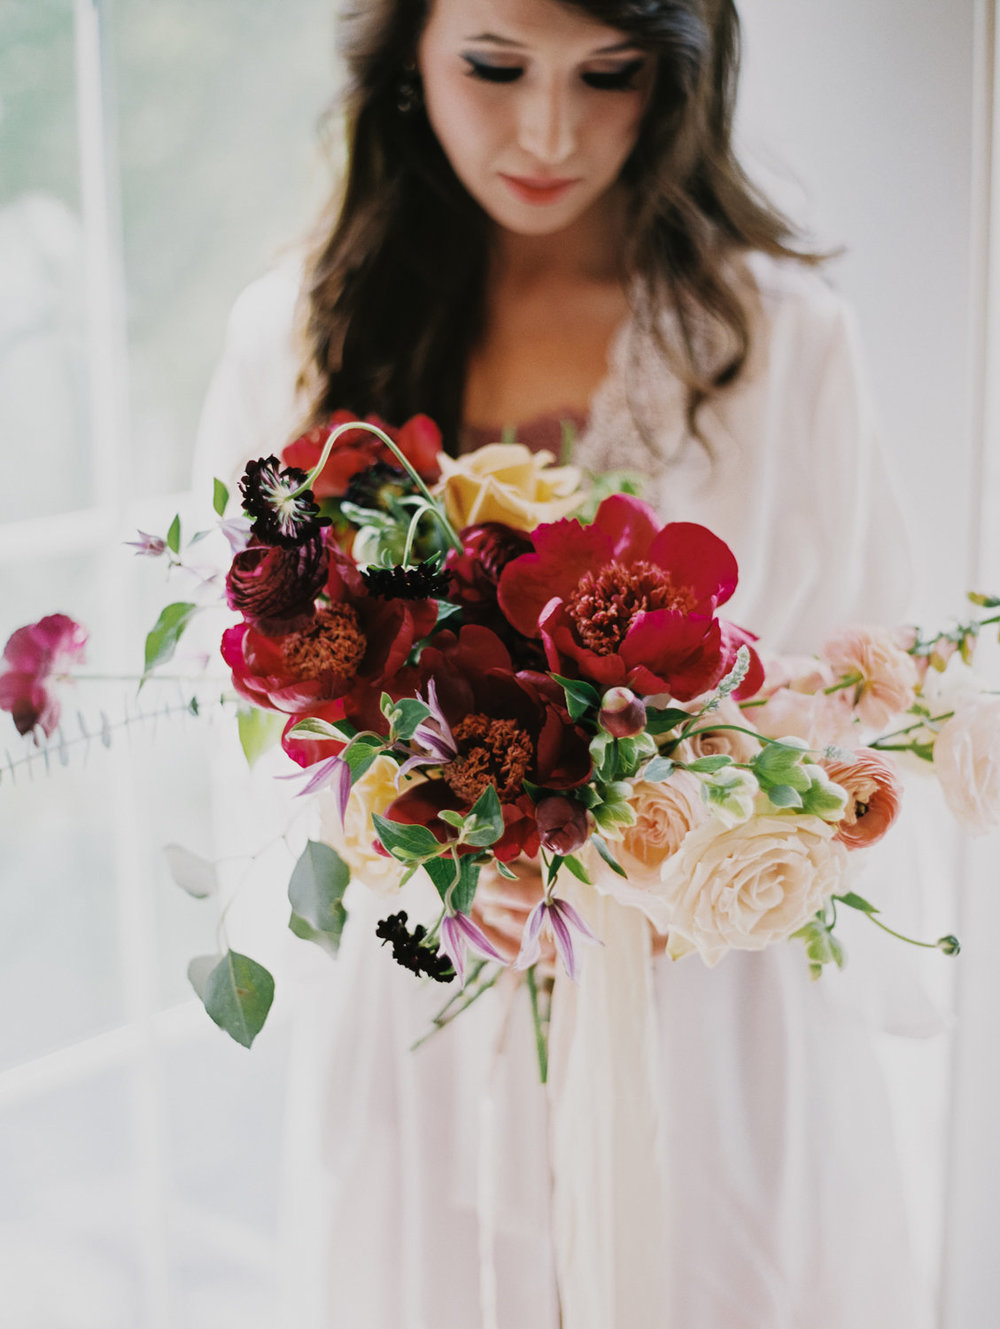 whimsical bride's bouquet